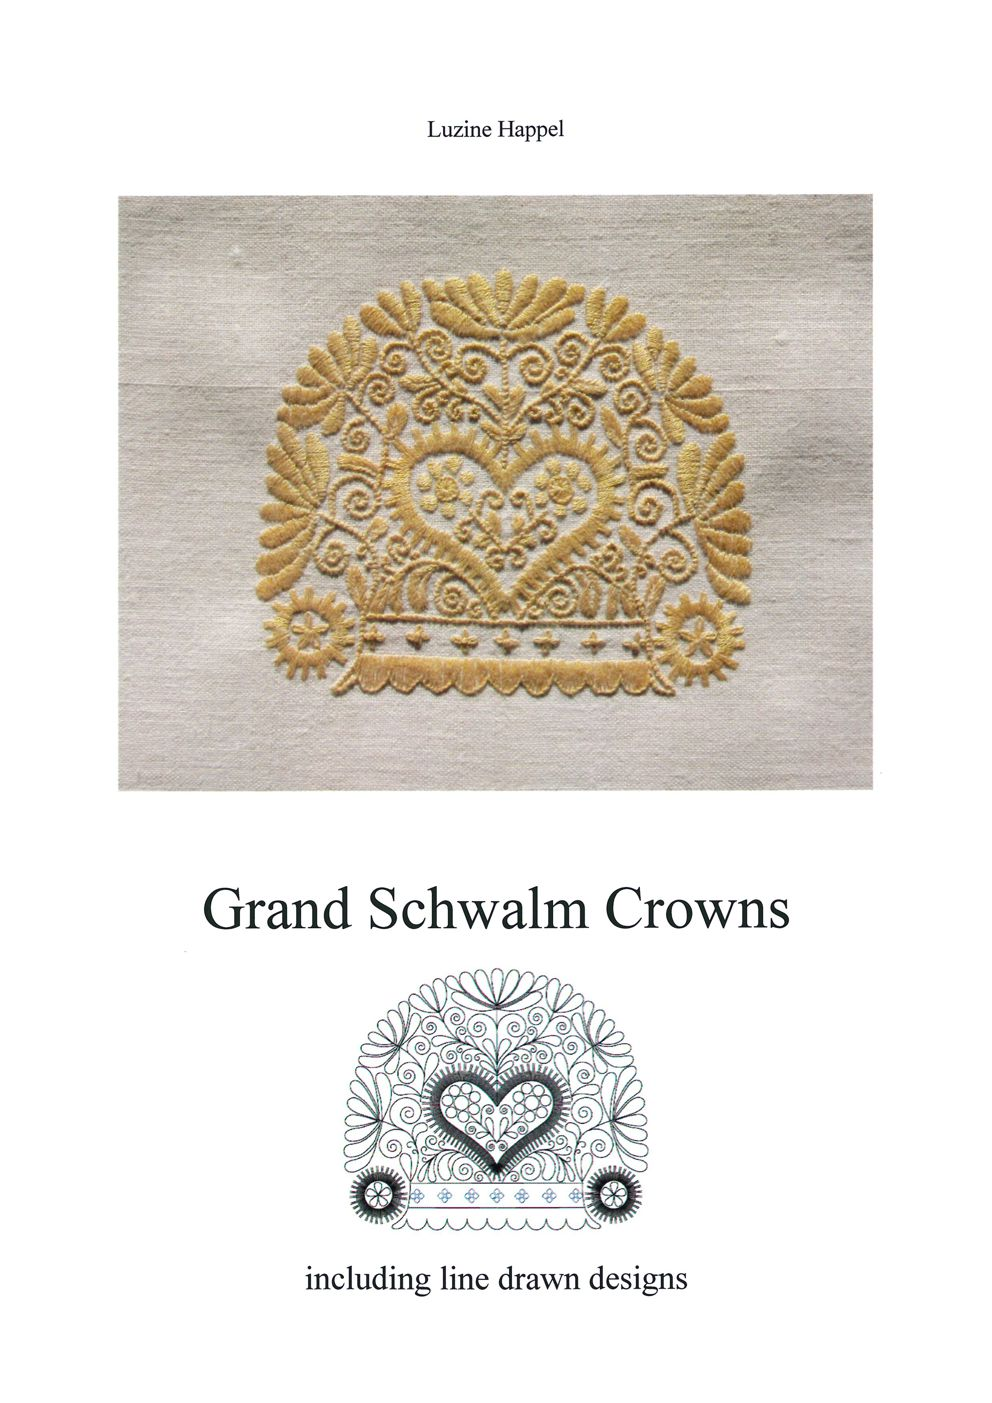 Grand Schwalm Crowns 1 / 2